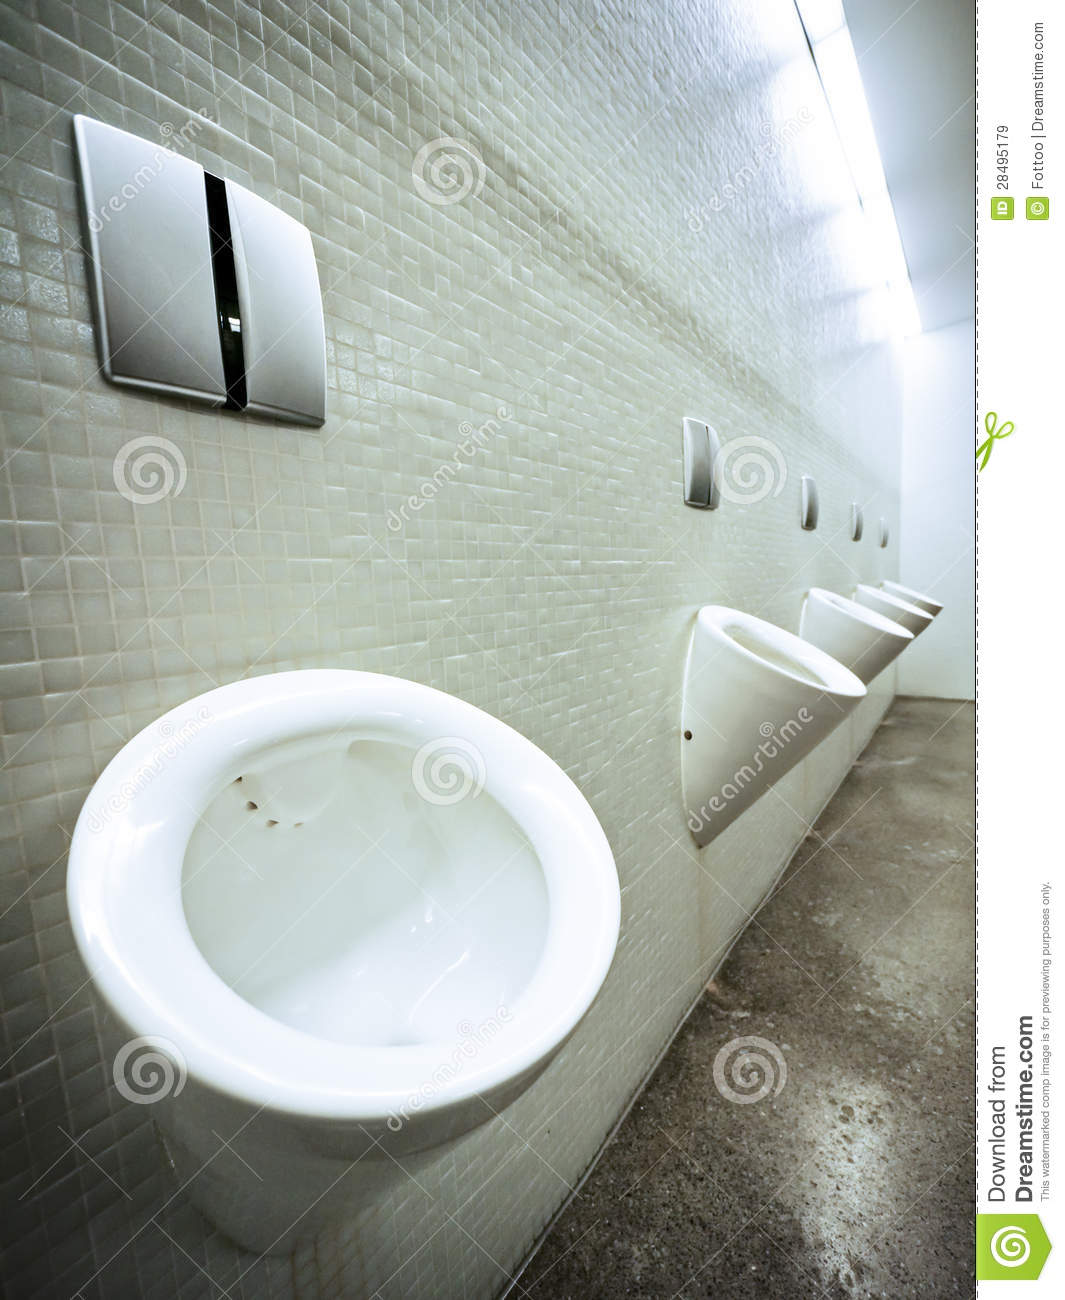 Modern Public Restroom For Men Mr No Pr No 0 518 0